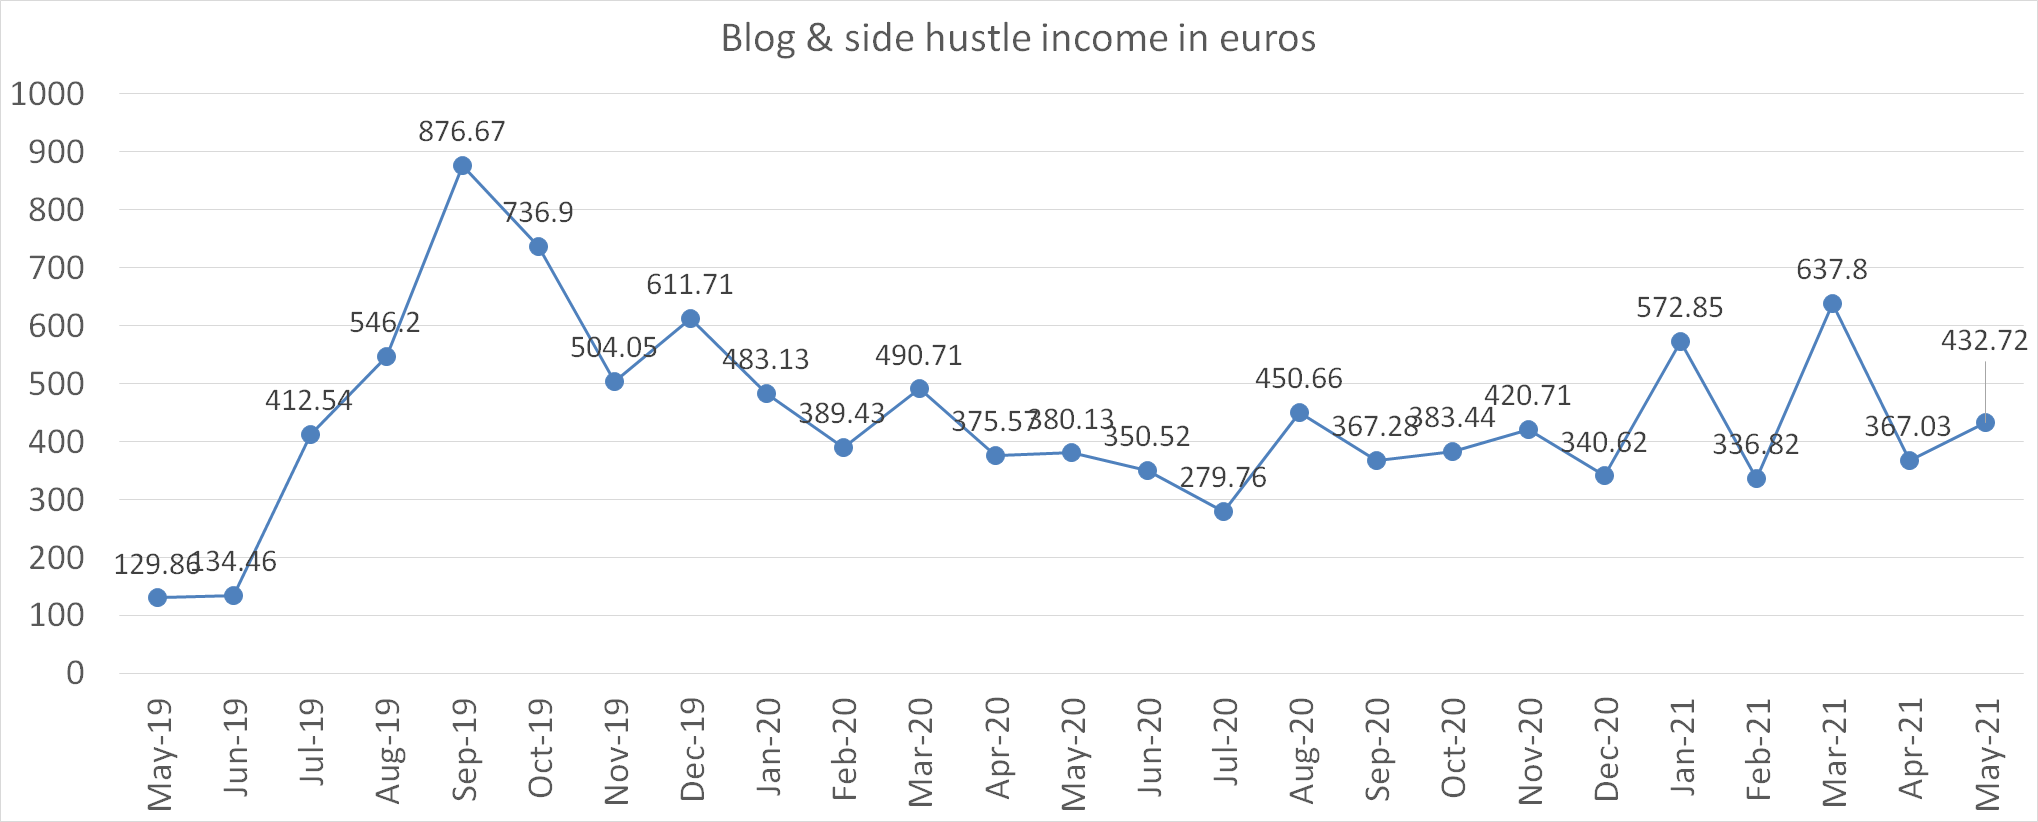 blog and side hustle income in euros may 2021